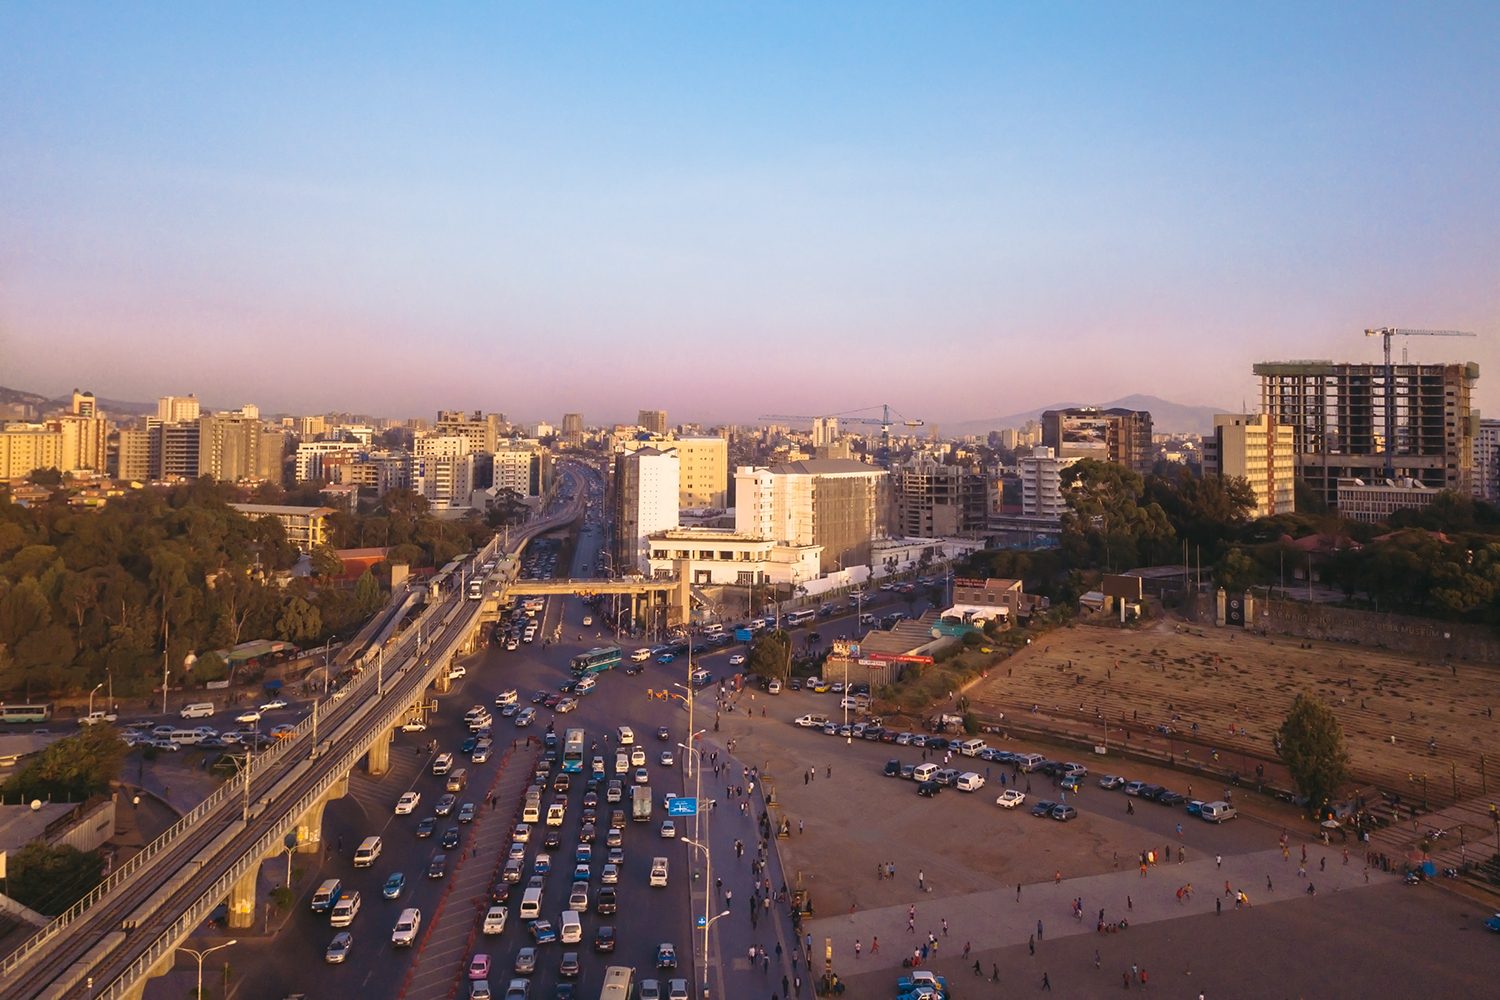 6. Addis Ababa,Ethiopia - Safe and pretty relaxed city.Enjoying super cheap and delicious local food.Walking in the back streets around the colourful shops and small cafes makes you feel like a local!